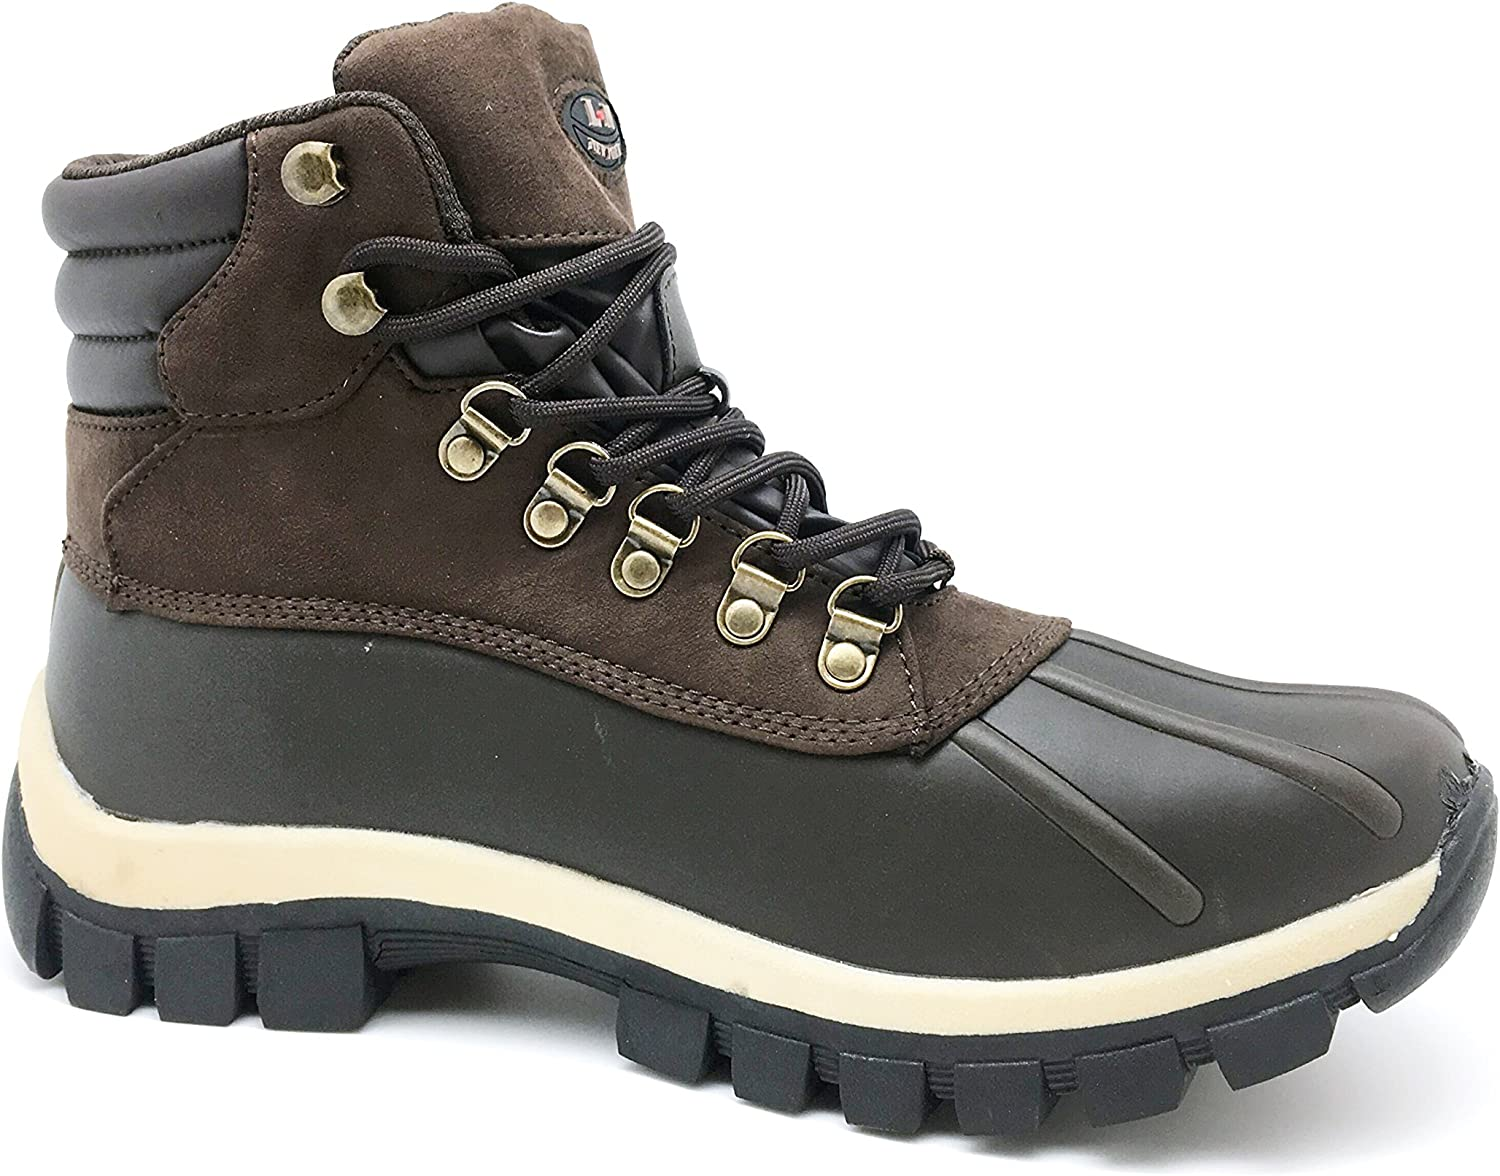 LM Men Waterproof Rubber Sole Winter Snow Boots Work Boots 7014